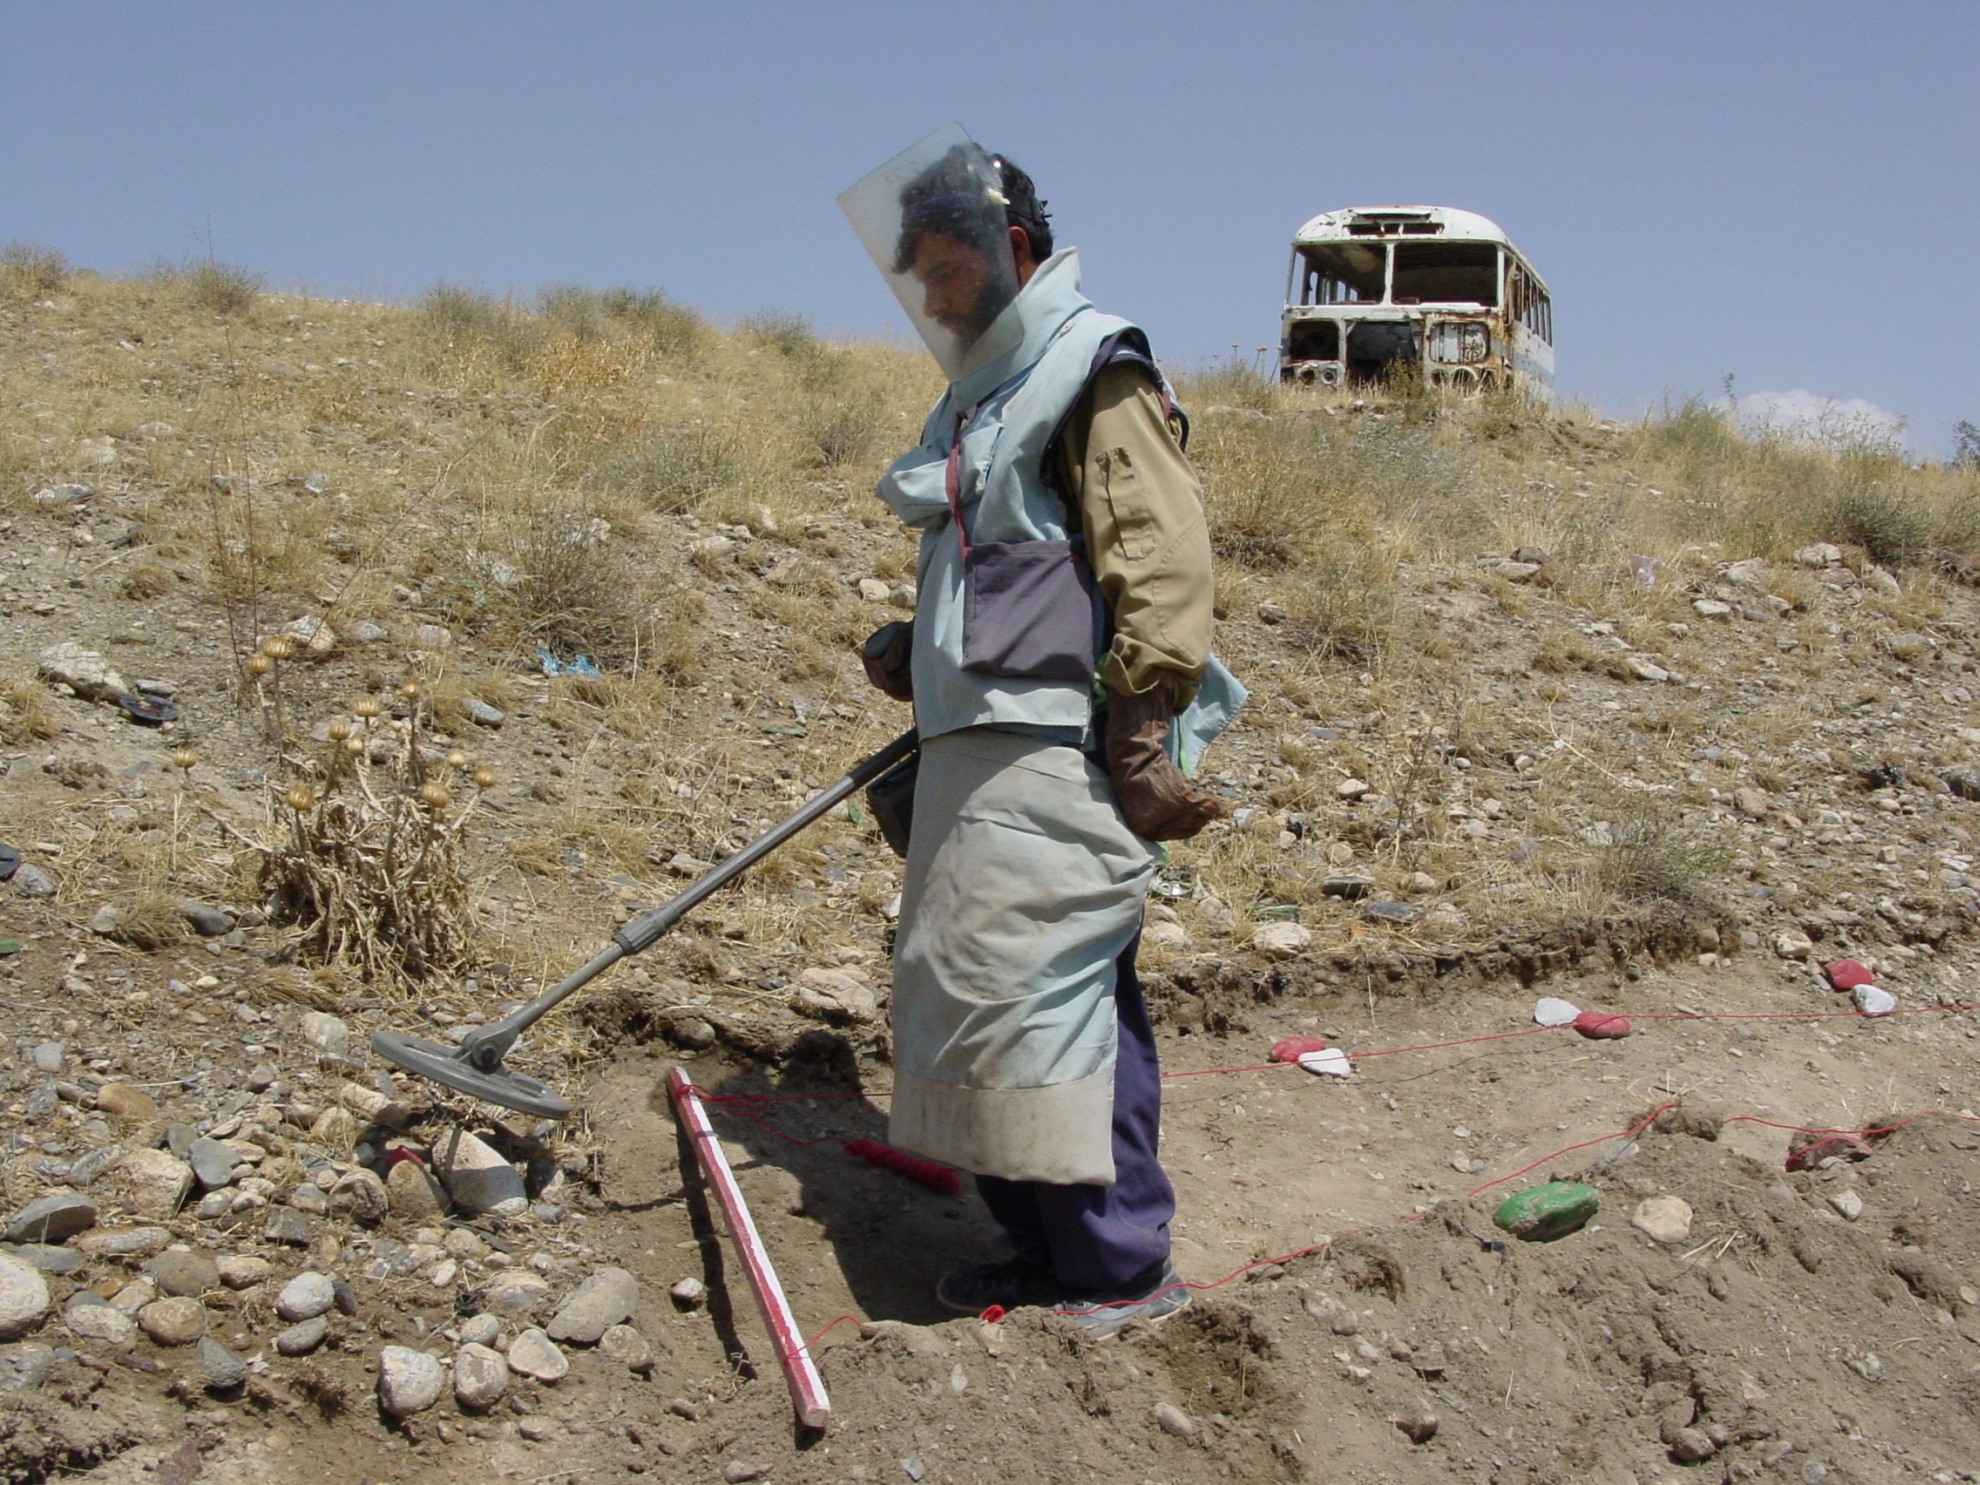 Demining a hillside in Afghanistan. Photo: Jens Kjær Jensen, 2003